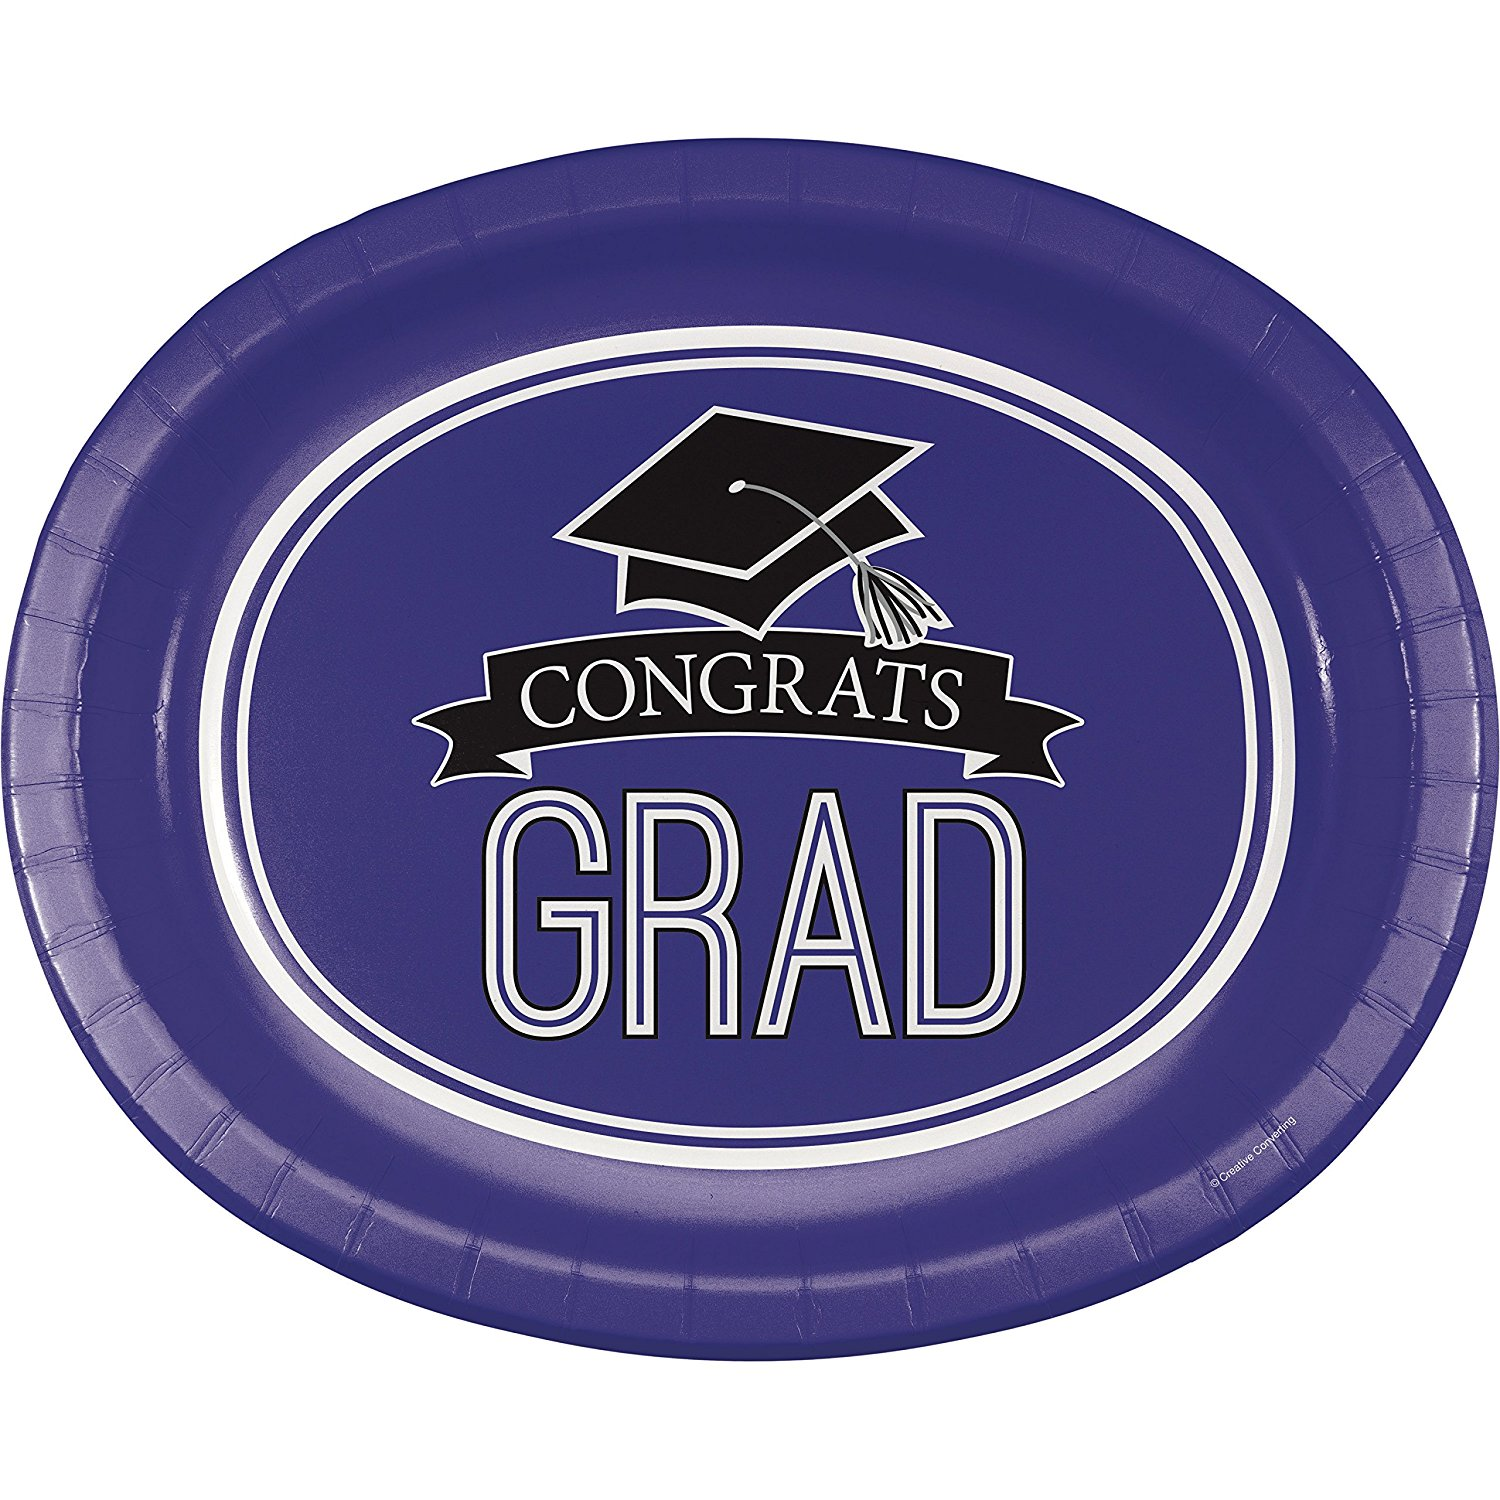 Graduation School Spirit Purple Oval Plates, 24 ct